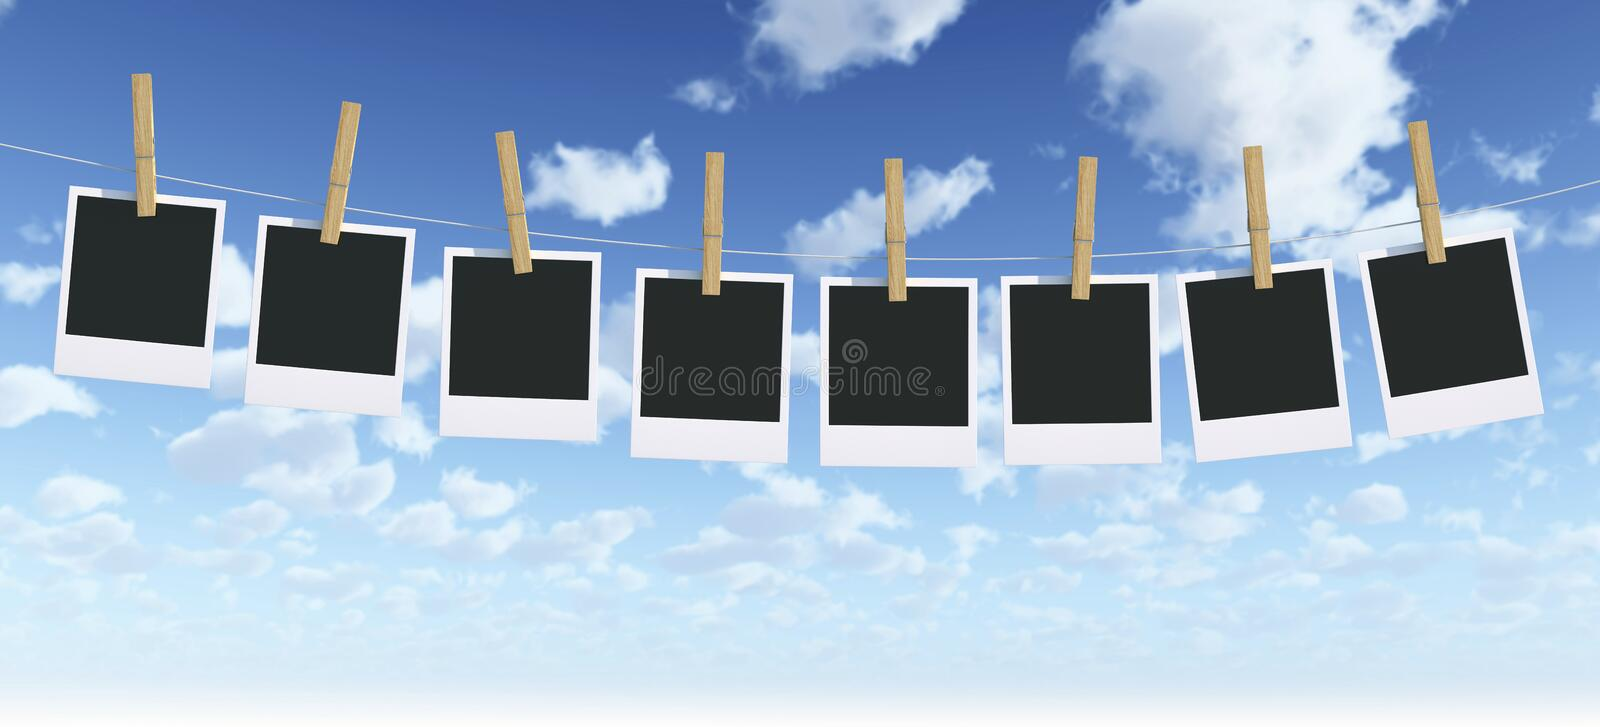 Isolated Photo Frame With Clothespin Stock Photo